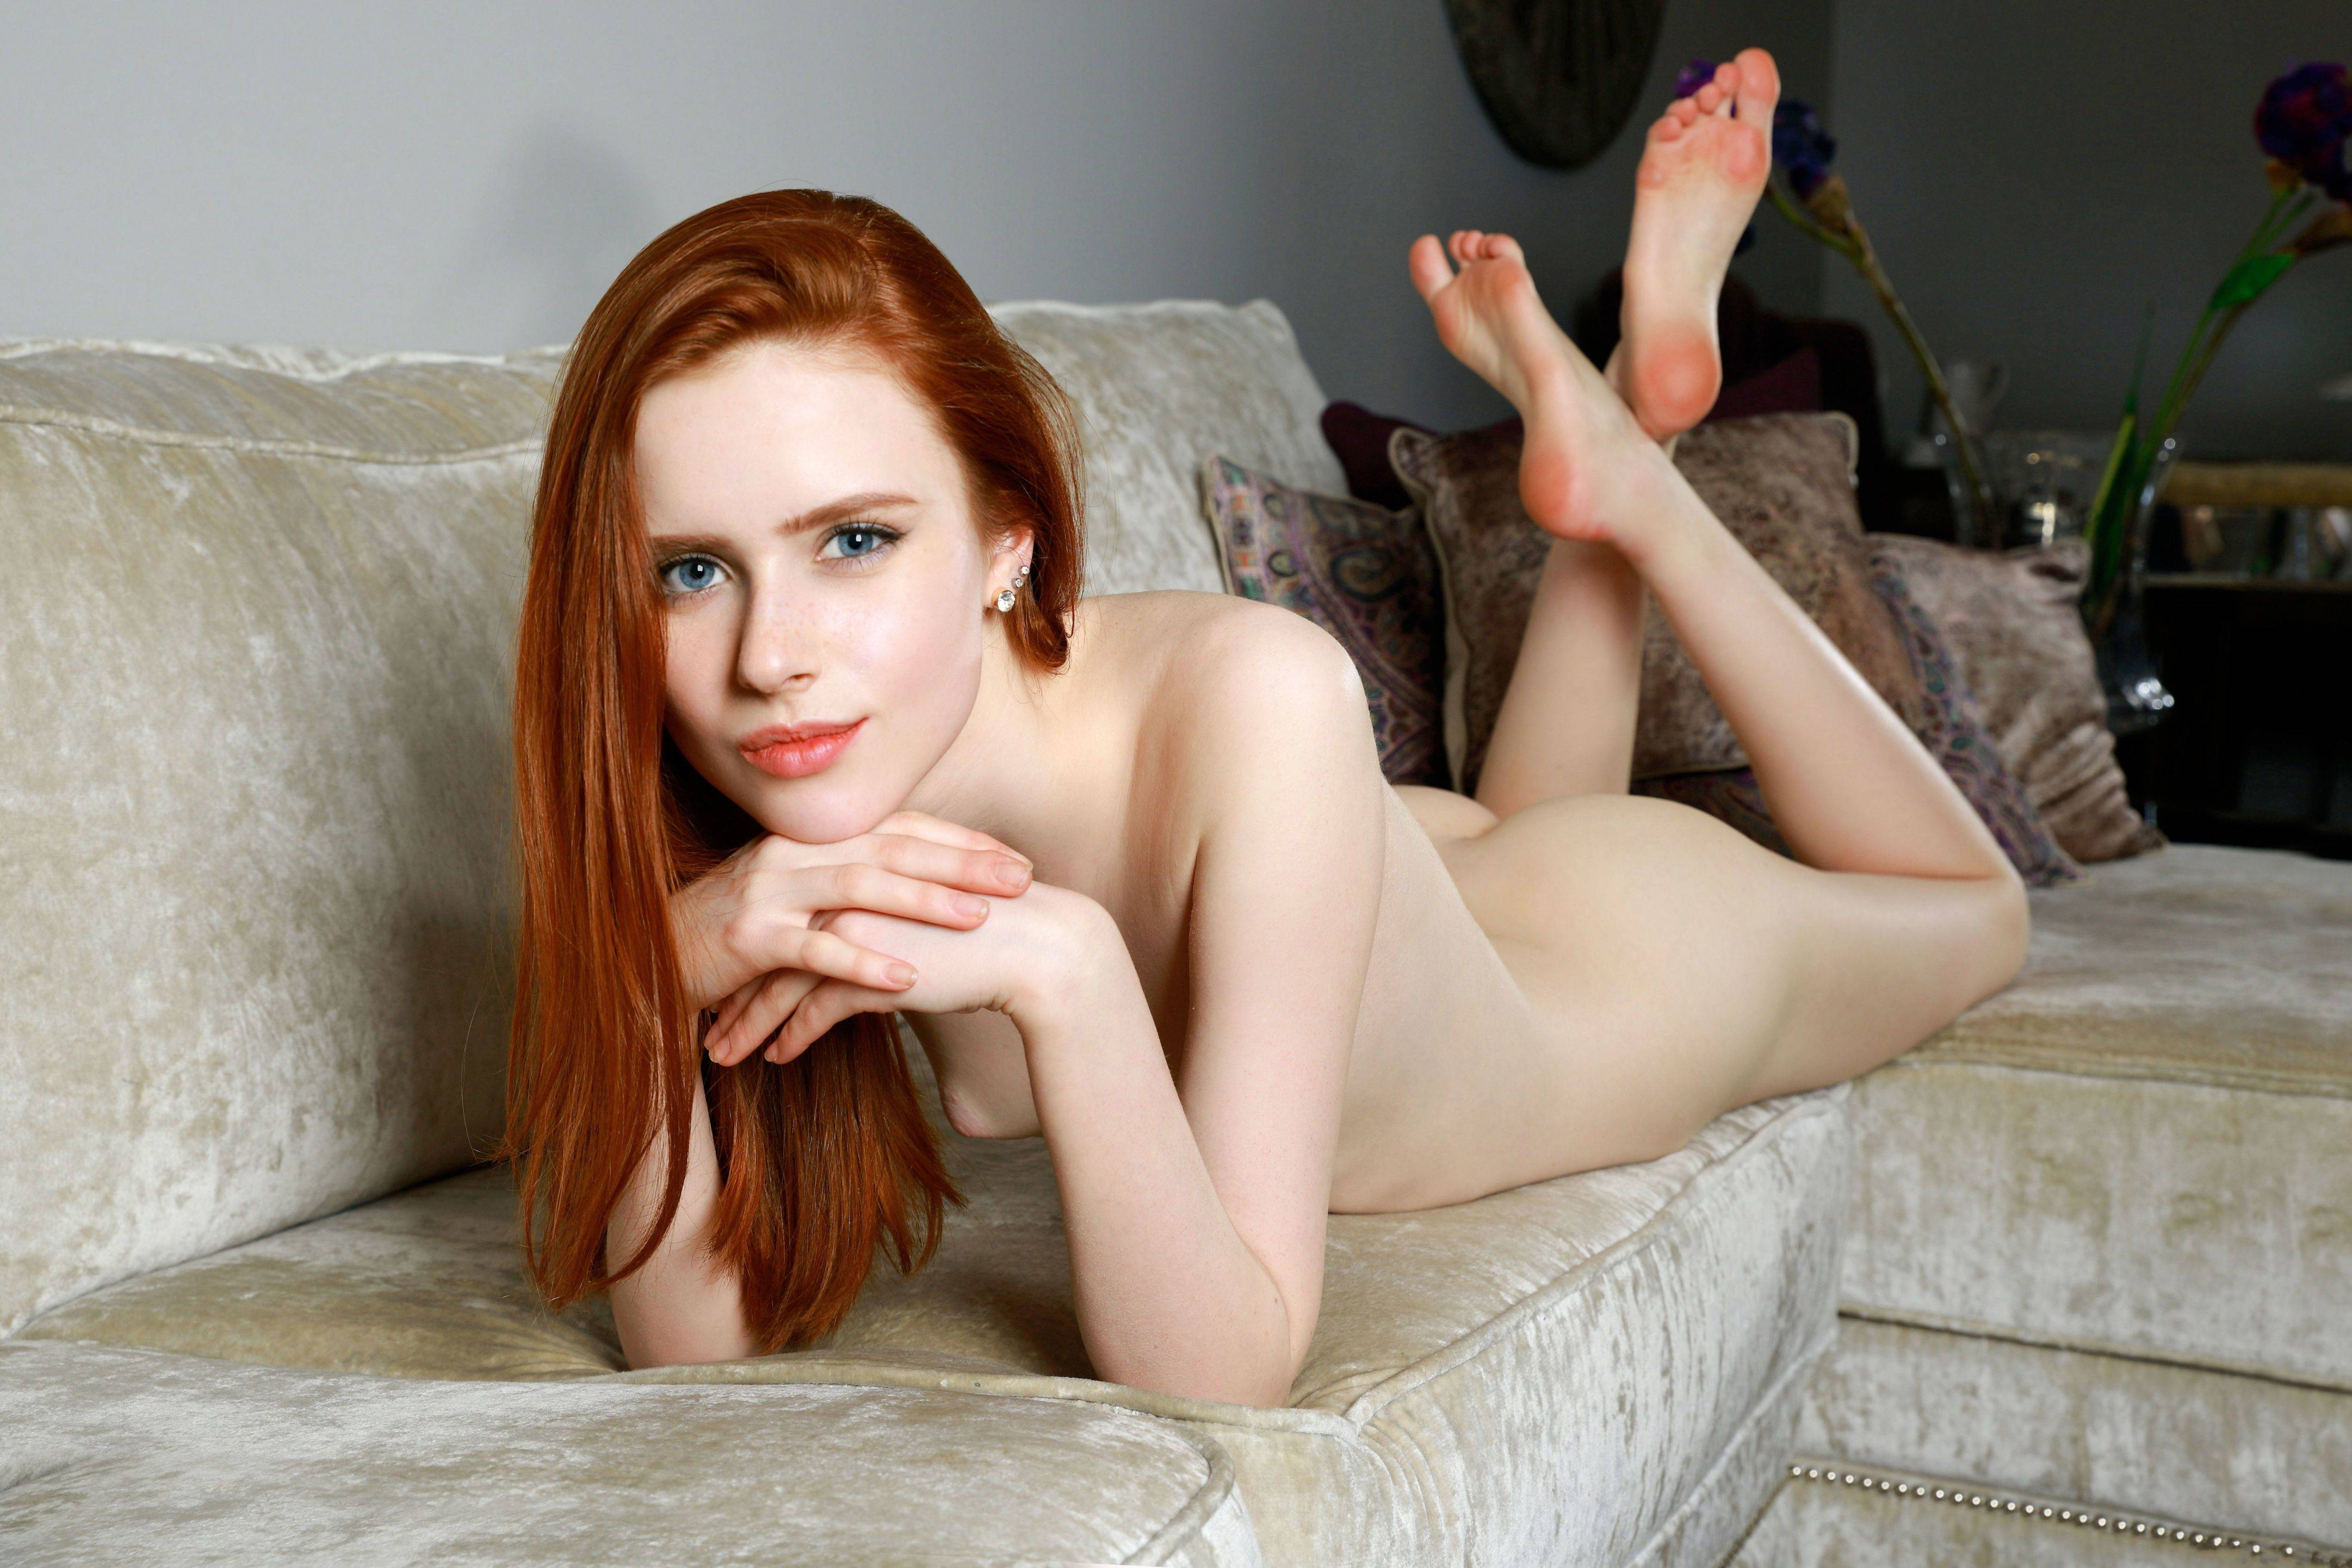 skinny-redhead-tgp-real-nude-pictures-of-wwe-superstars